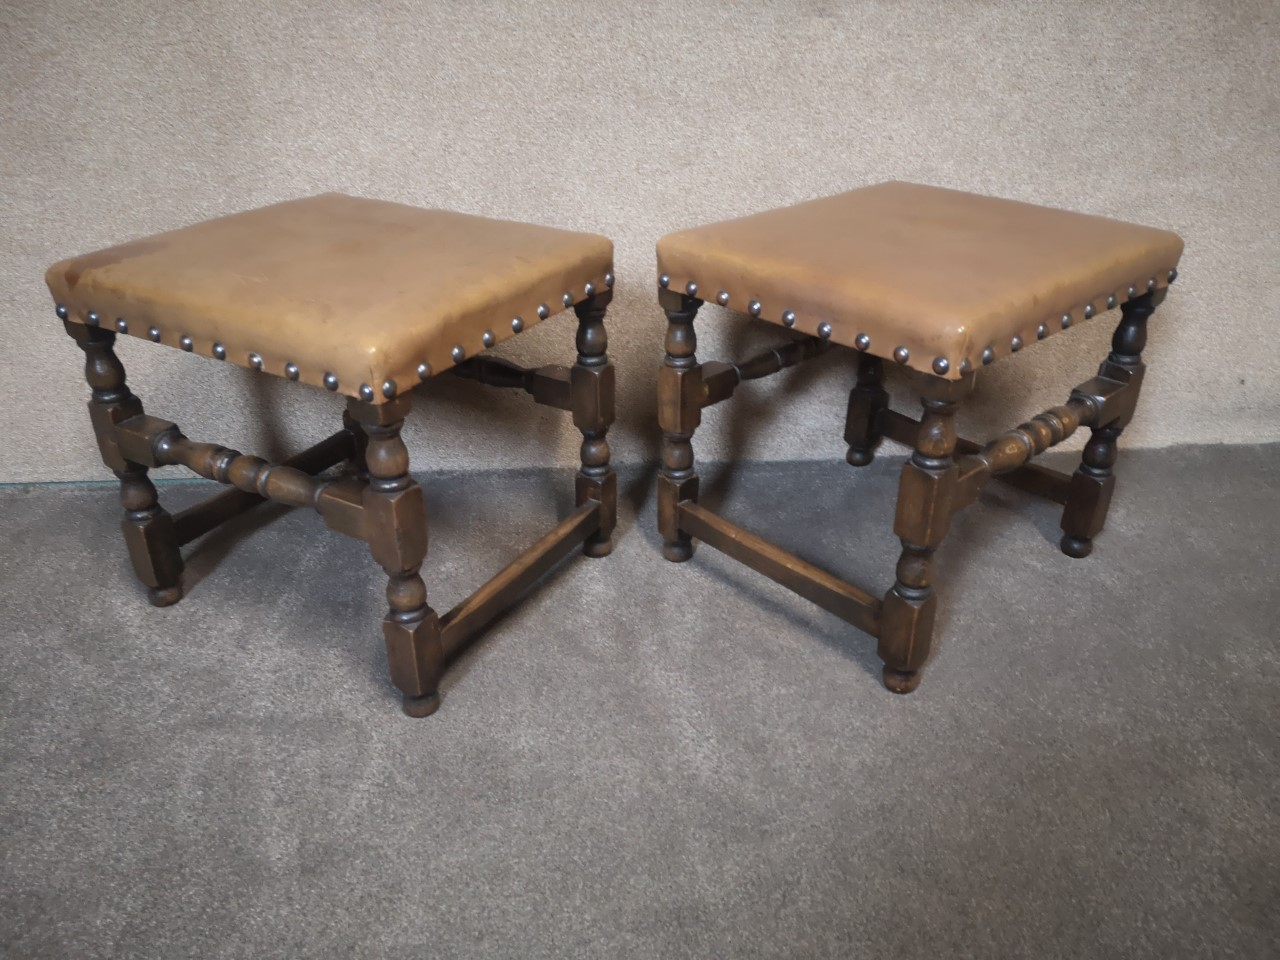 Pair of oak and leather stools画像